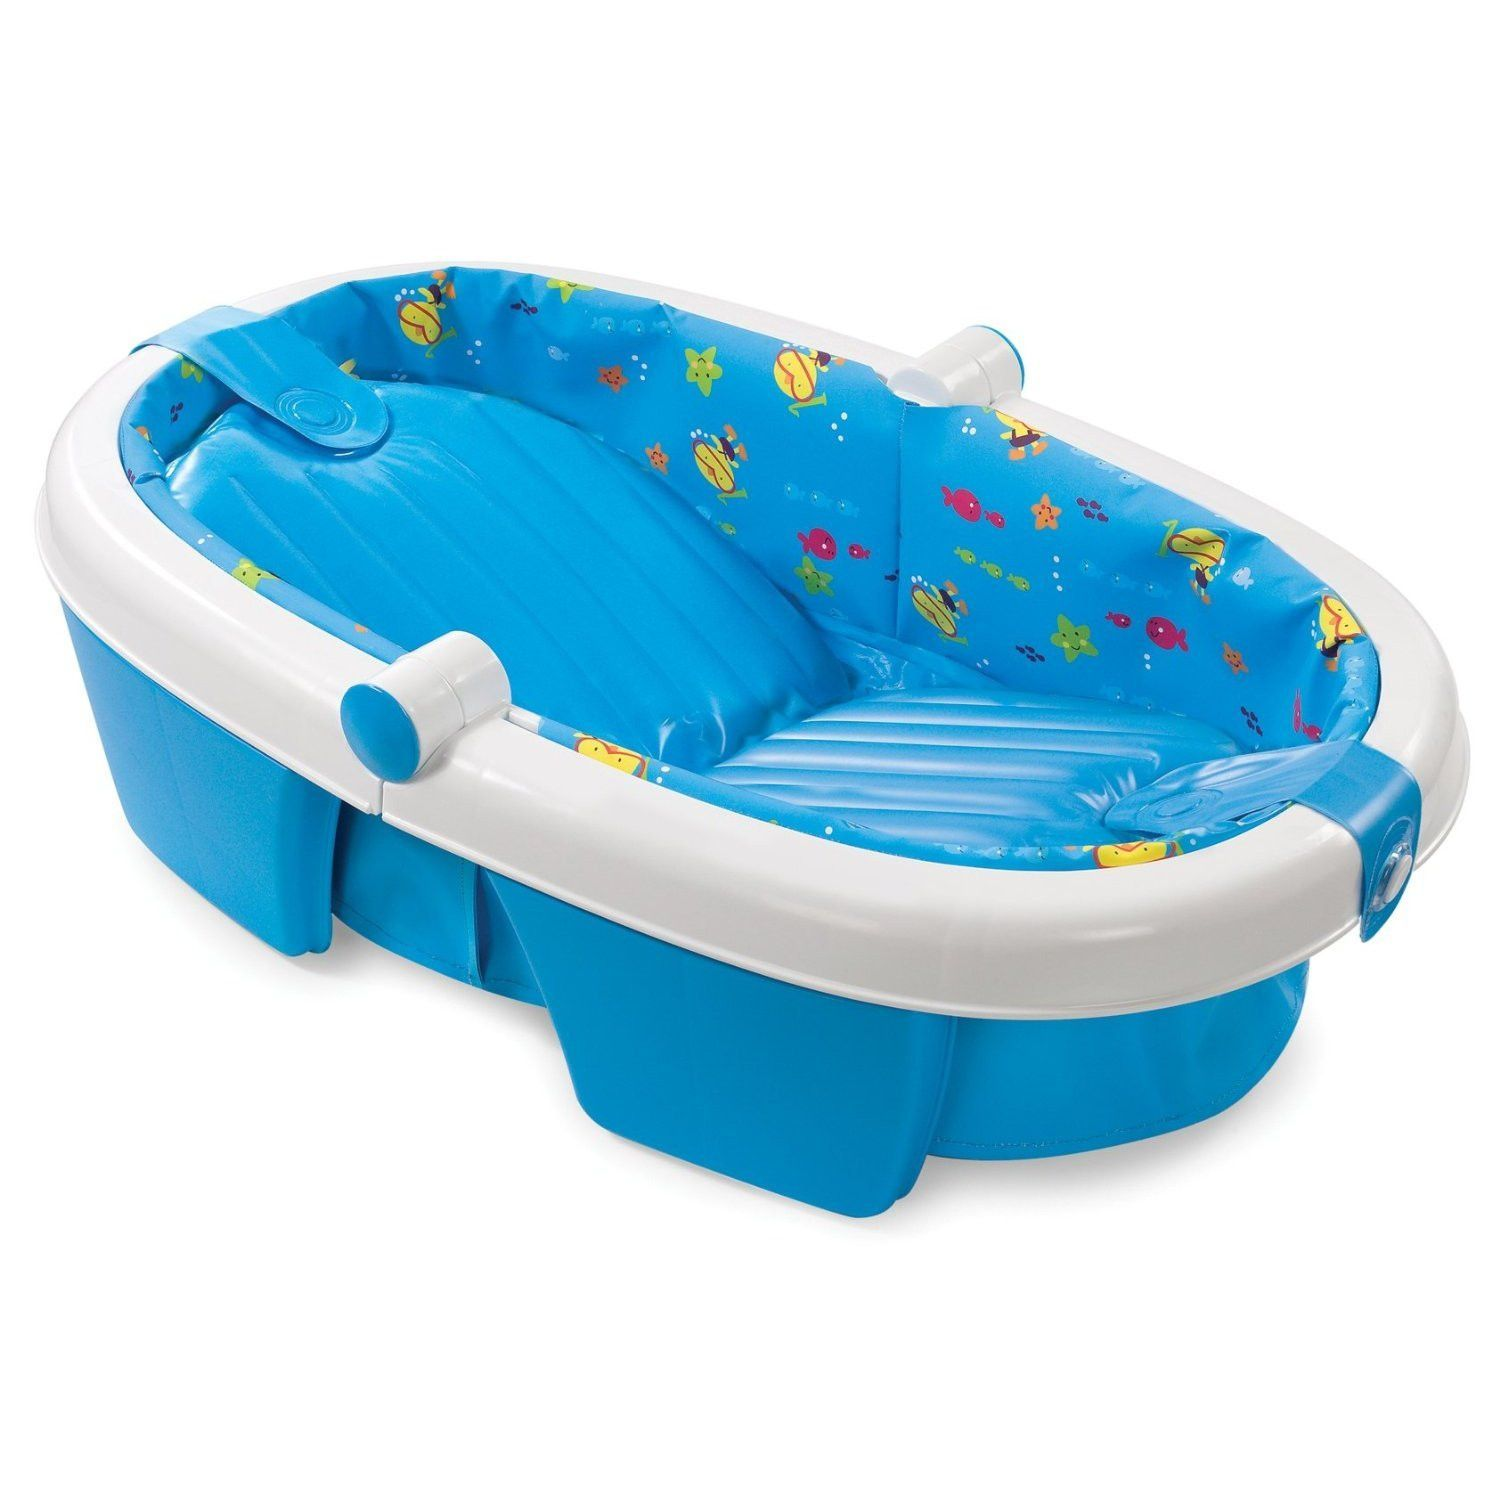 Summer Infant Newborn-to-Toddler Fold Away Baby Bath - Blue | Products